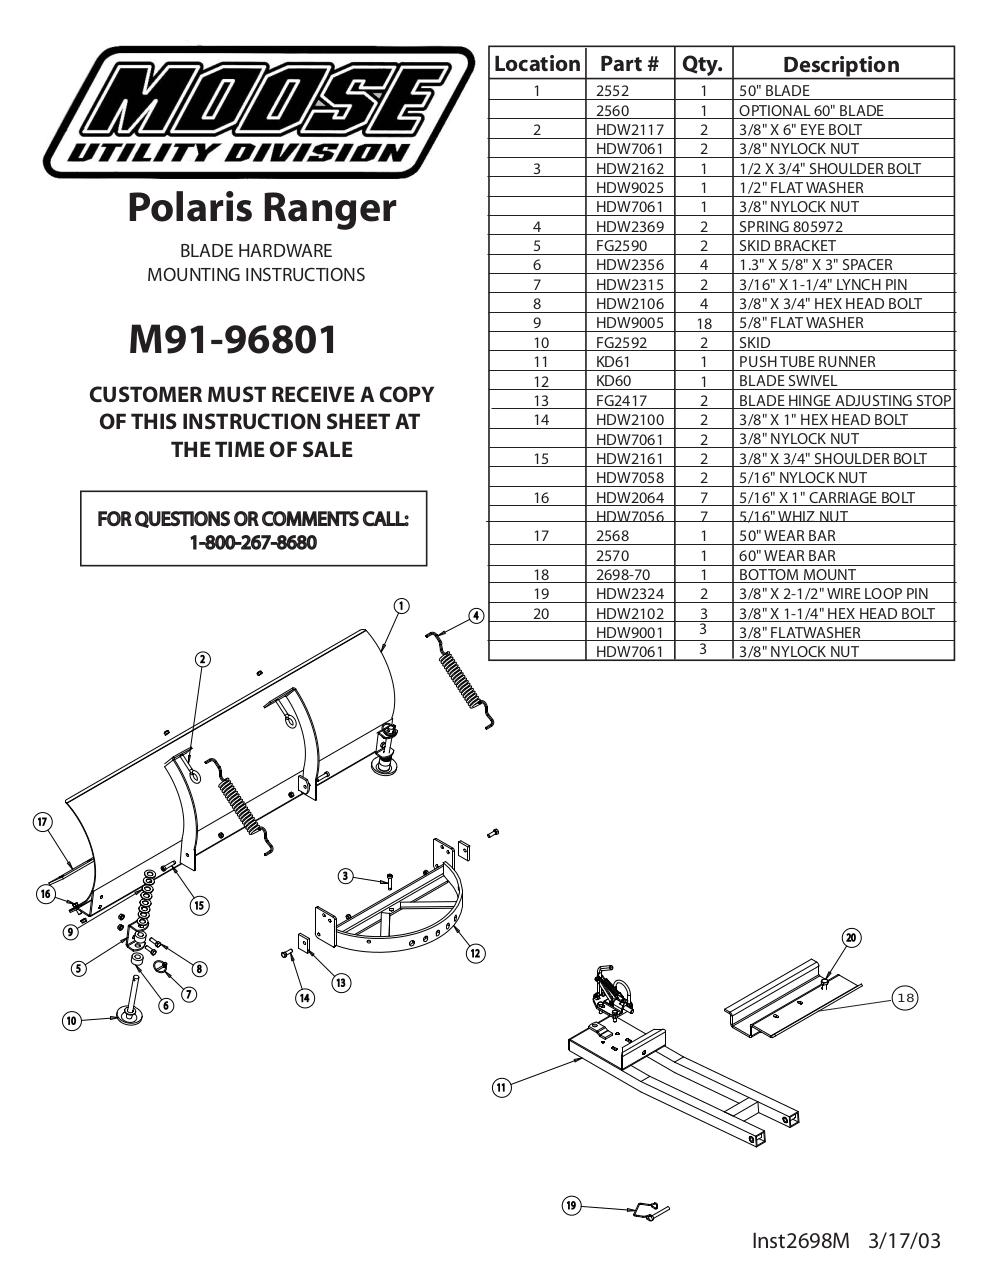 Inst2615 Indt - Moose Plow Pdf